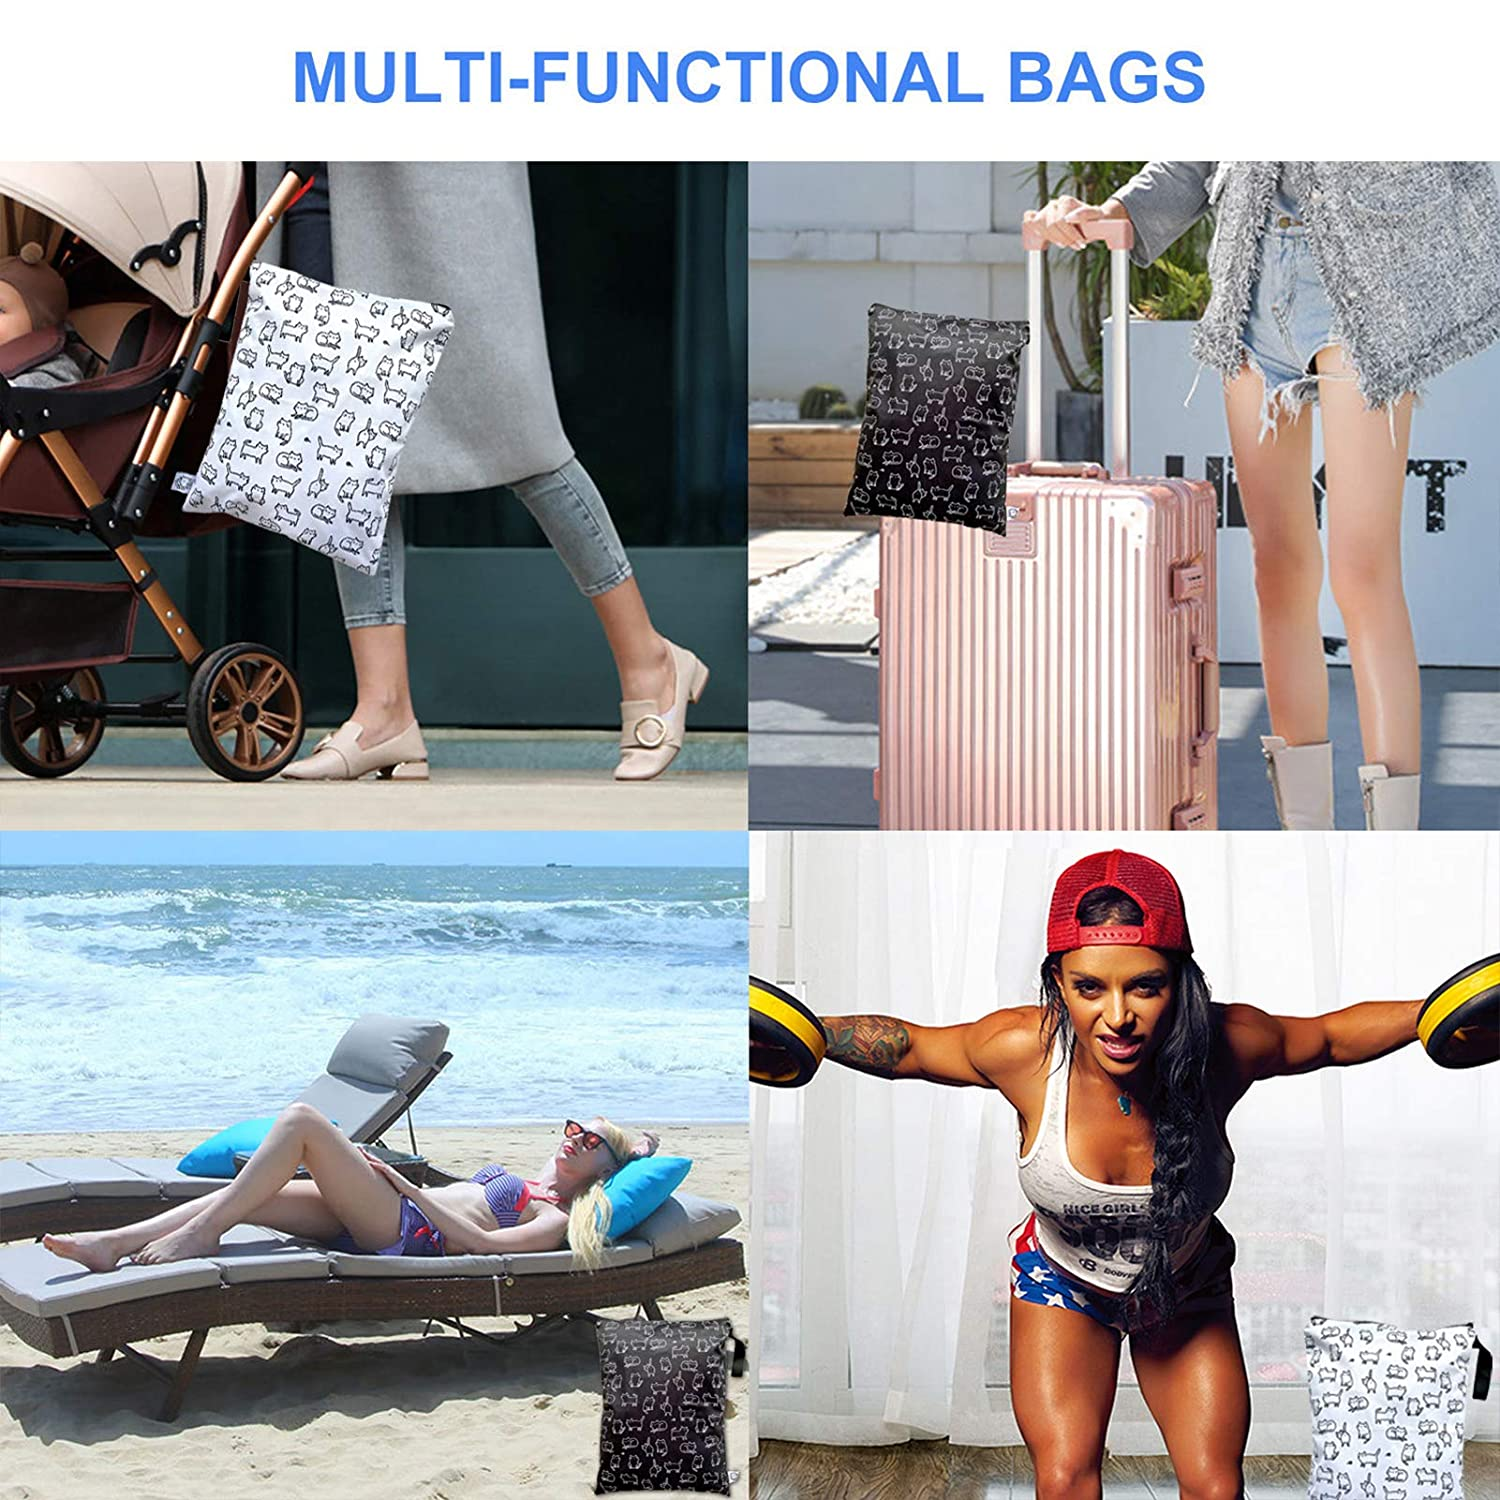 Beaches Large Capacity Dirty Sportswear 2 Pieces of 12.6X 16.5 Wet Swimwear FLOCK THREE Baby Diaper Wet Bag Waterproof and Reusable Travel Bag for Strollers